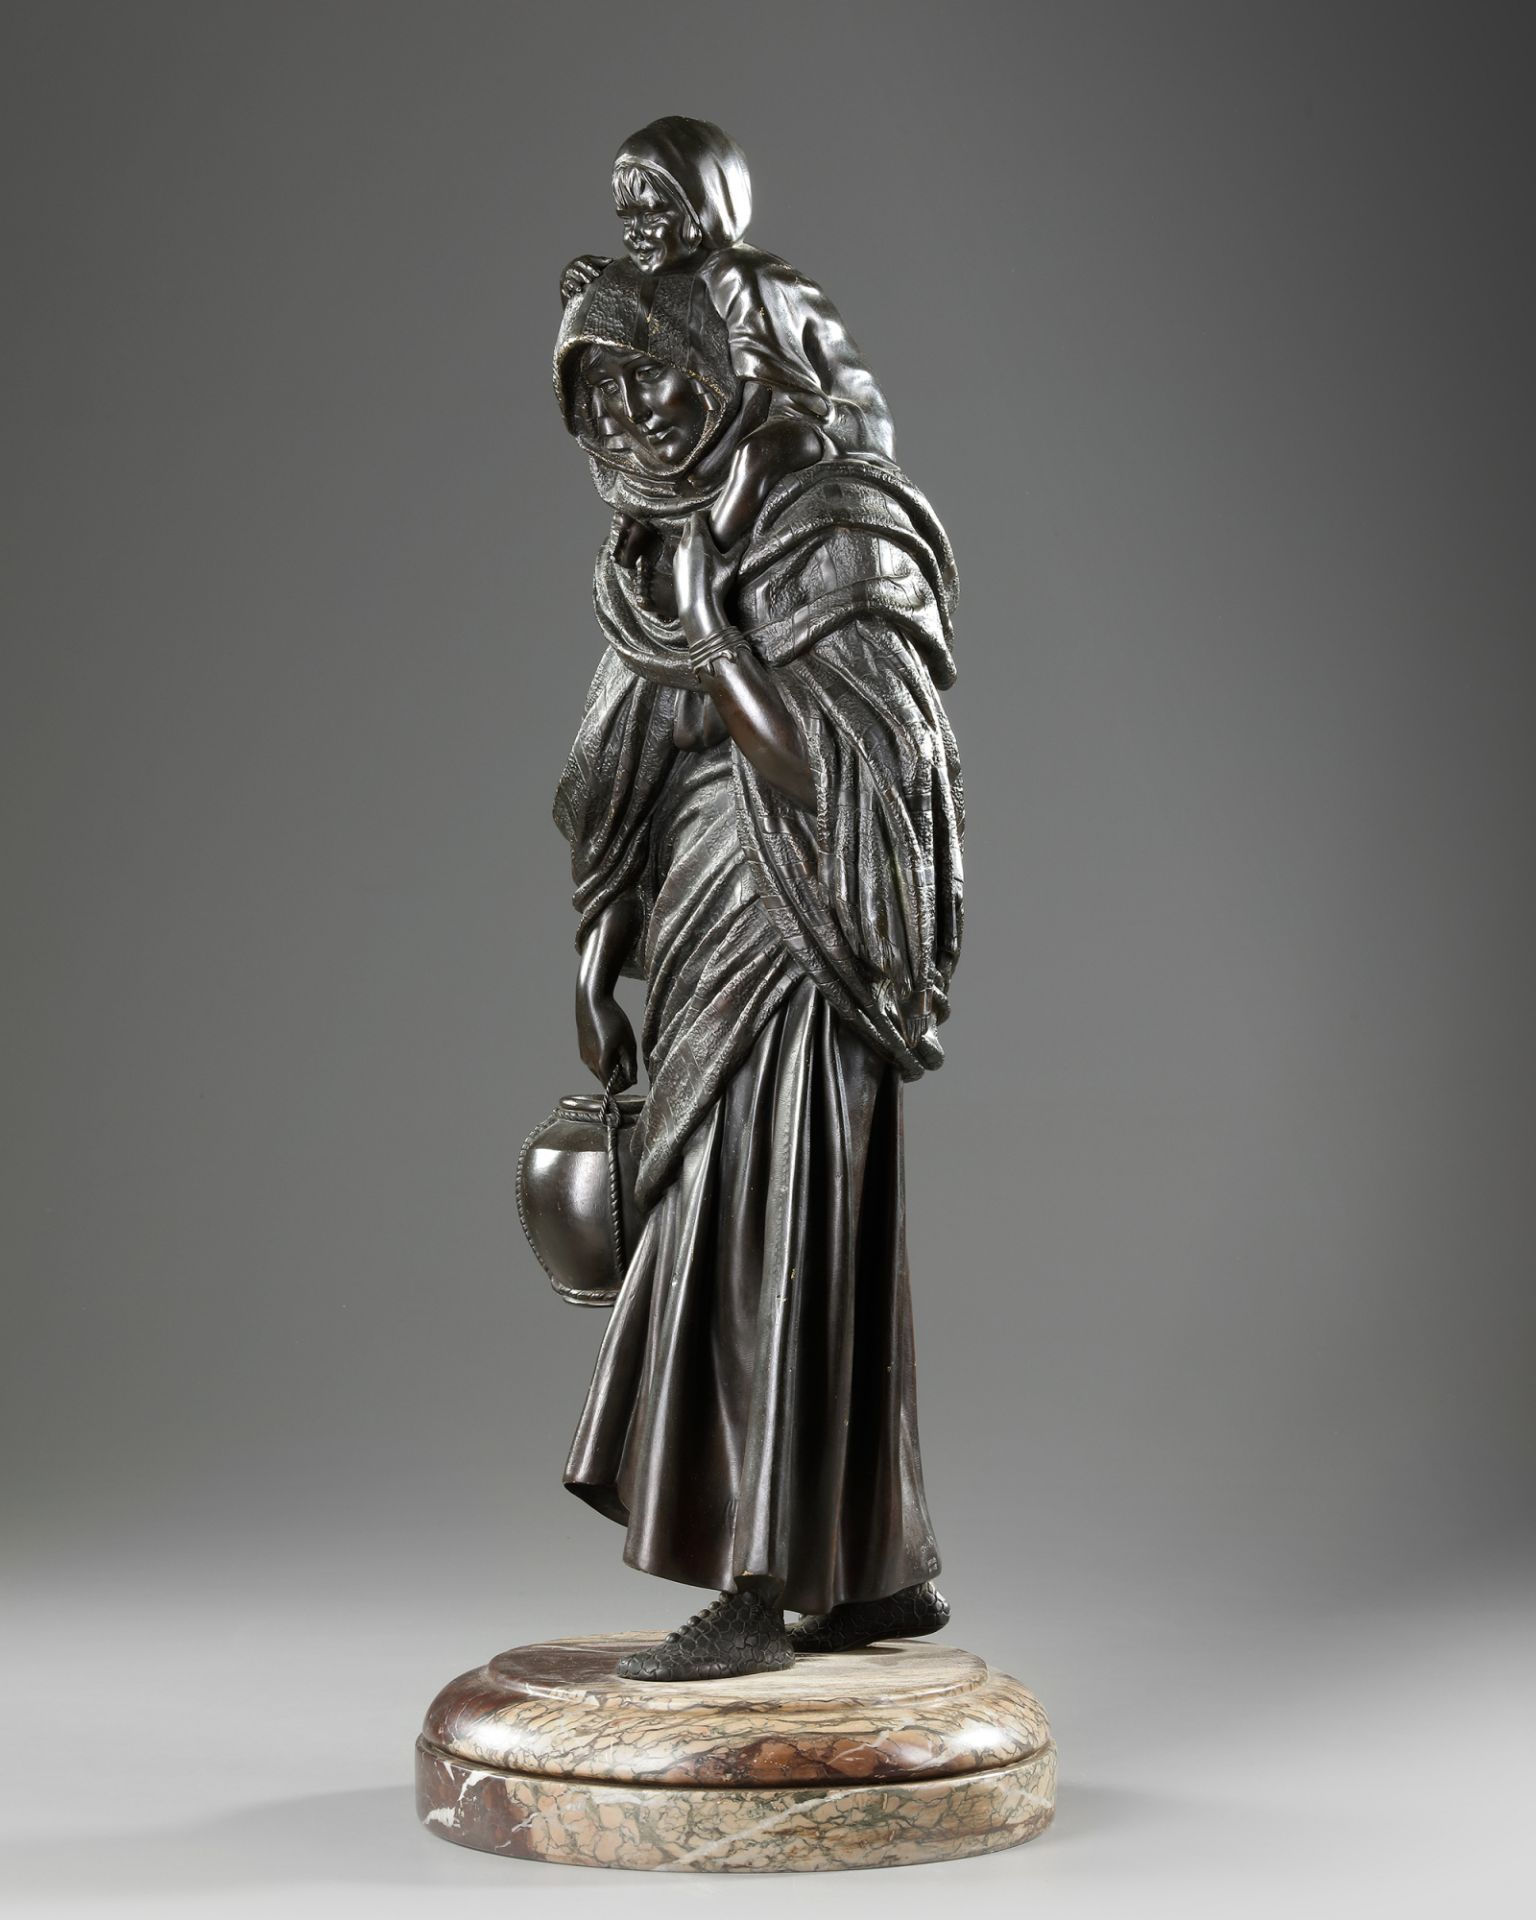 A BRONZE STATUE OF A LADY, DEMETRE CHIPARUS, 20TH CENTURY - Image 2 of 5